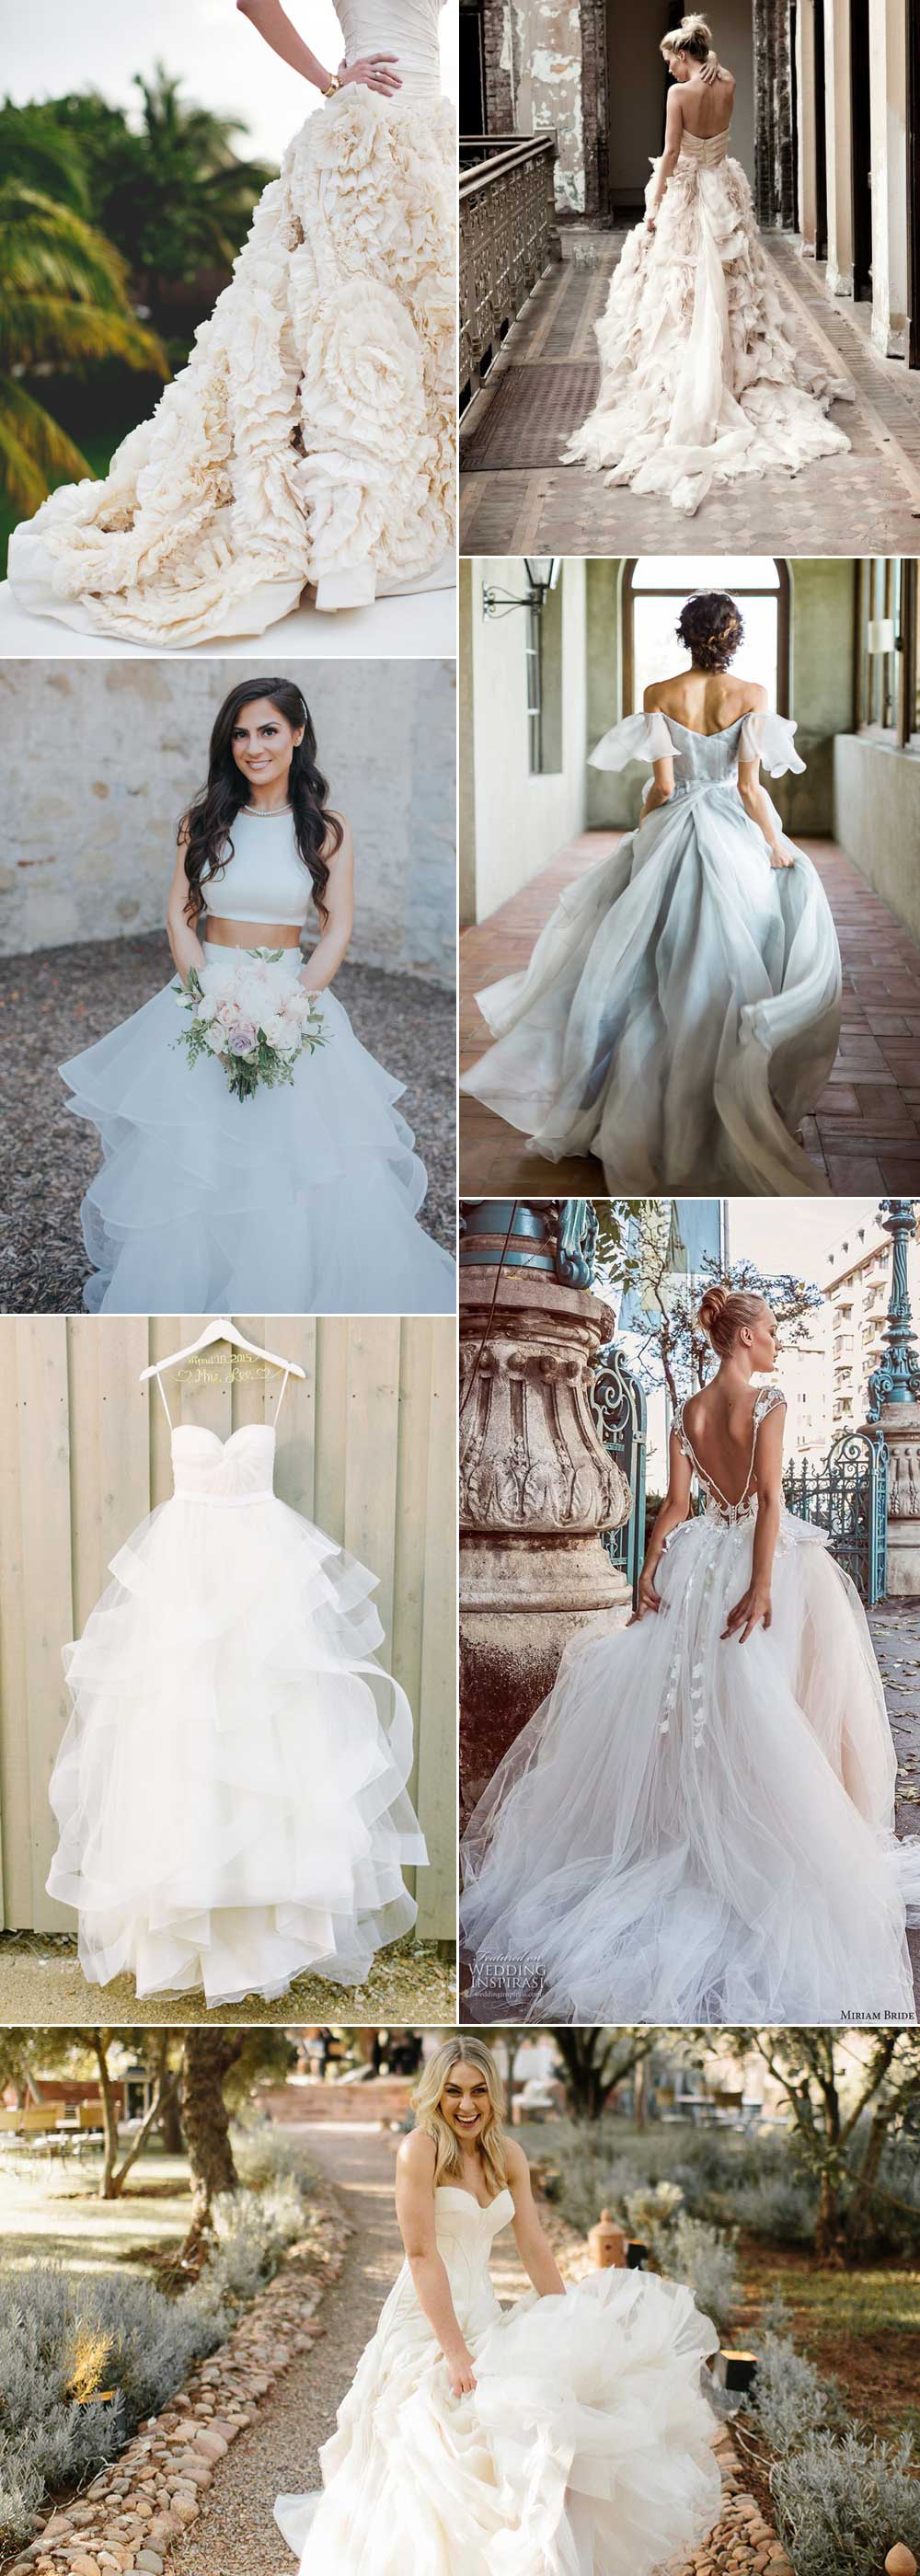 Statement tulle wedding dresses